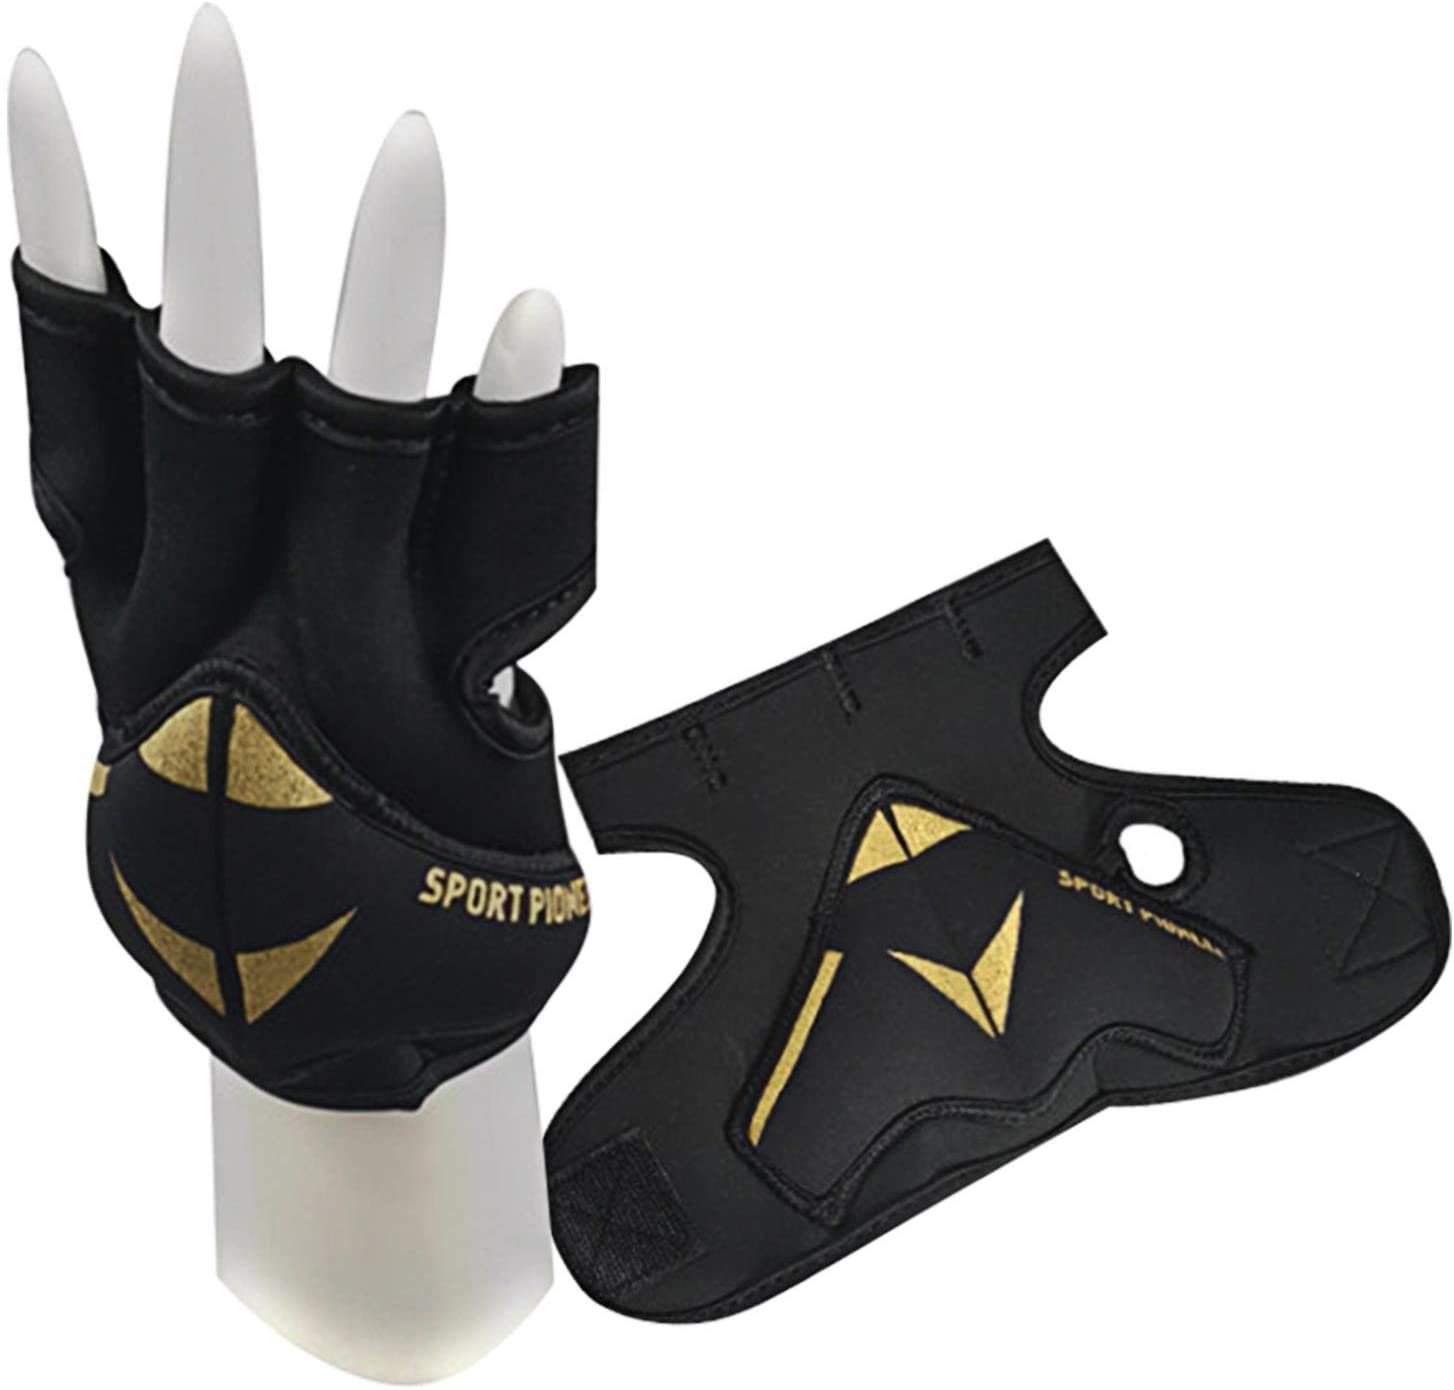 1pair Weighted Gloves Regular dealer Unisex Weight Po Training Bearing Limited time for free shipping